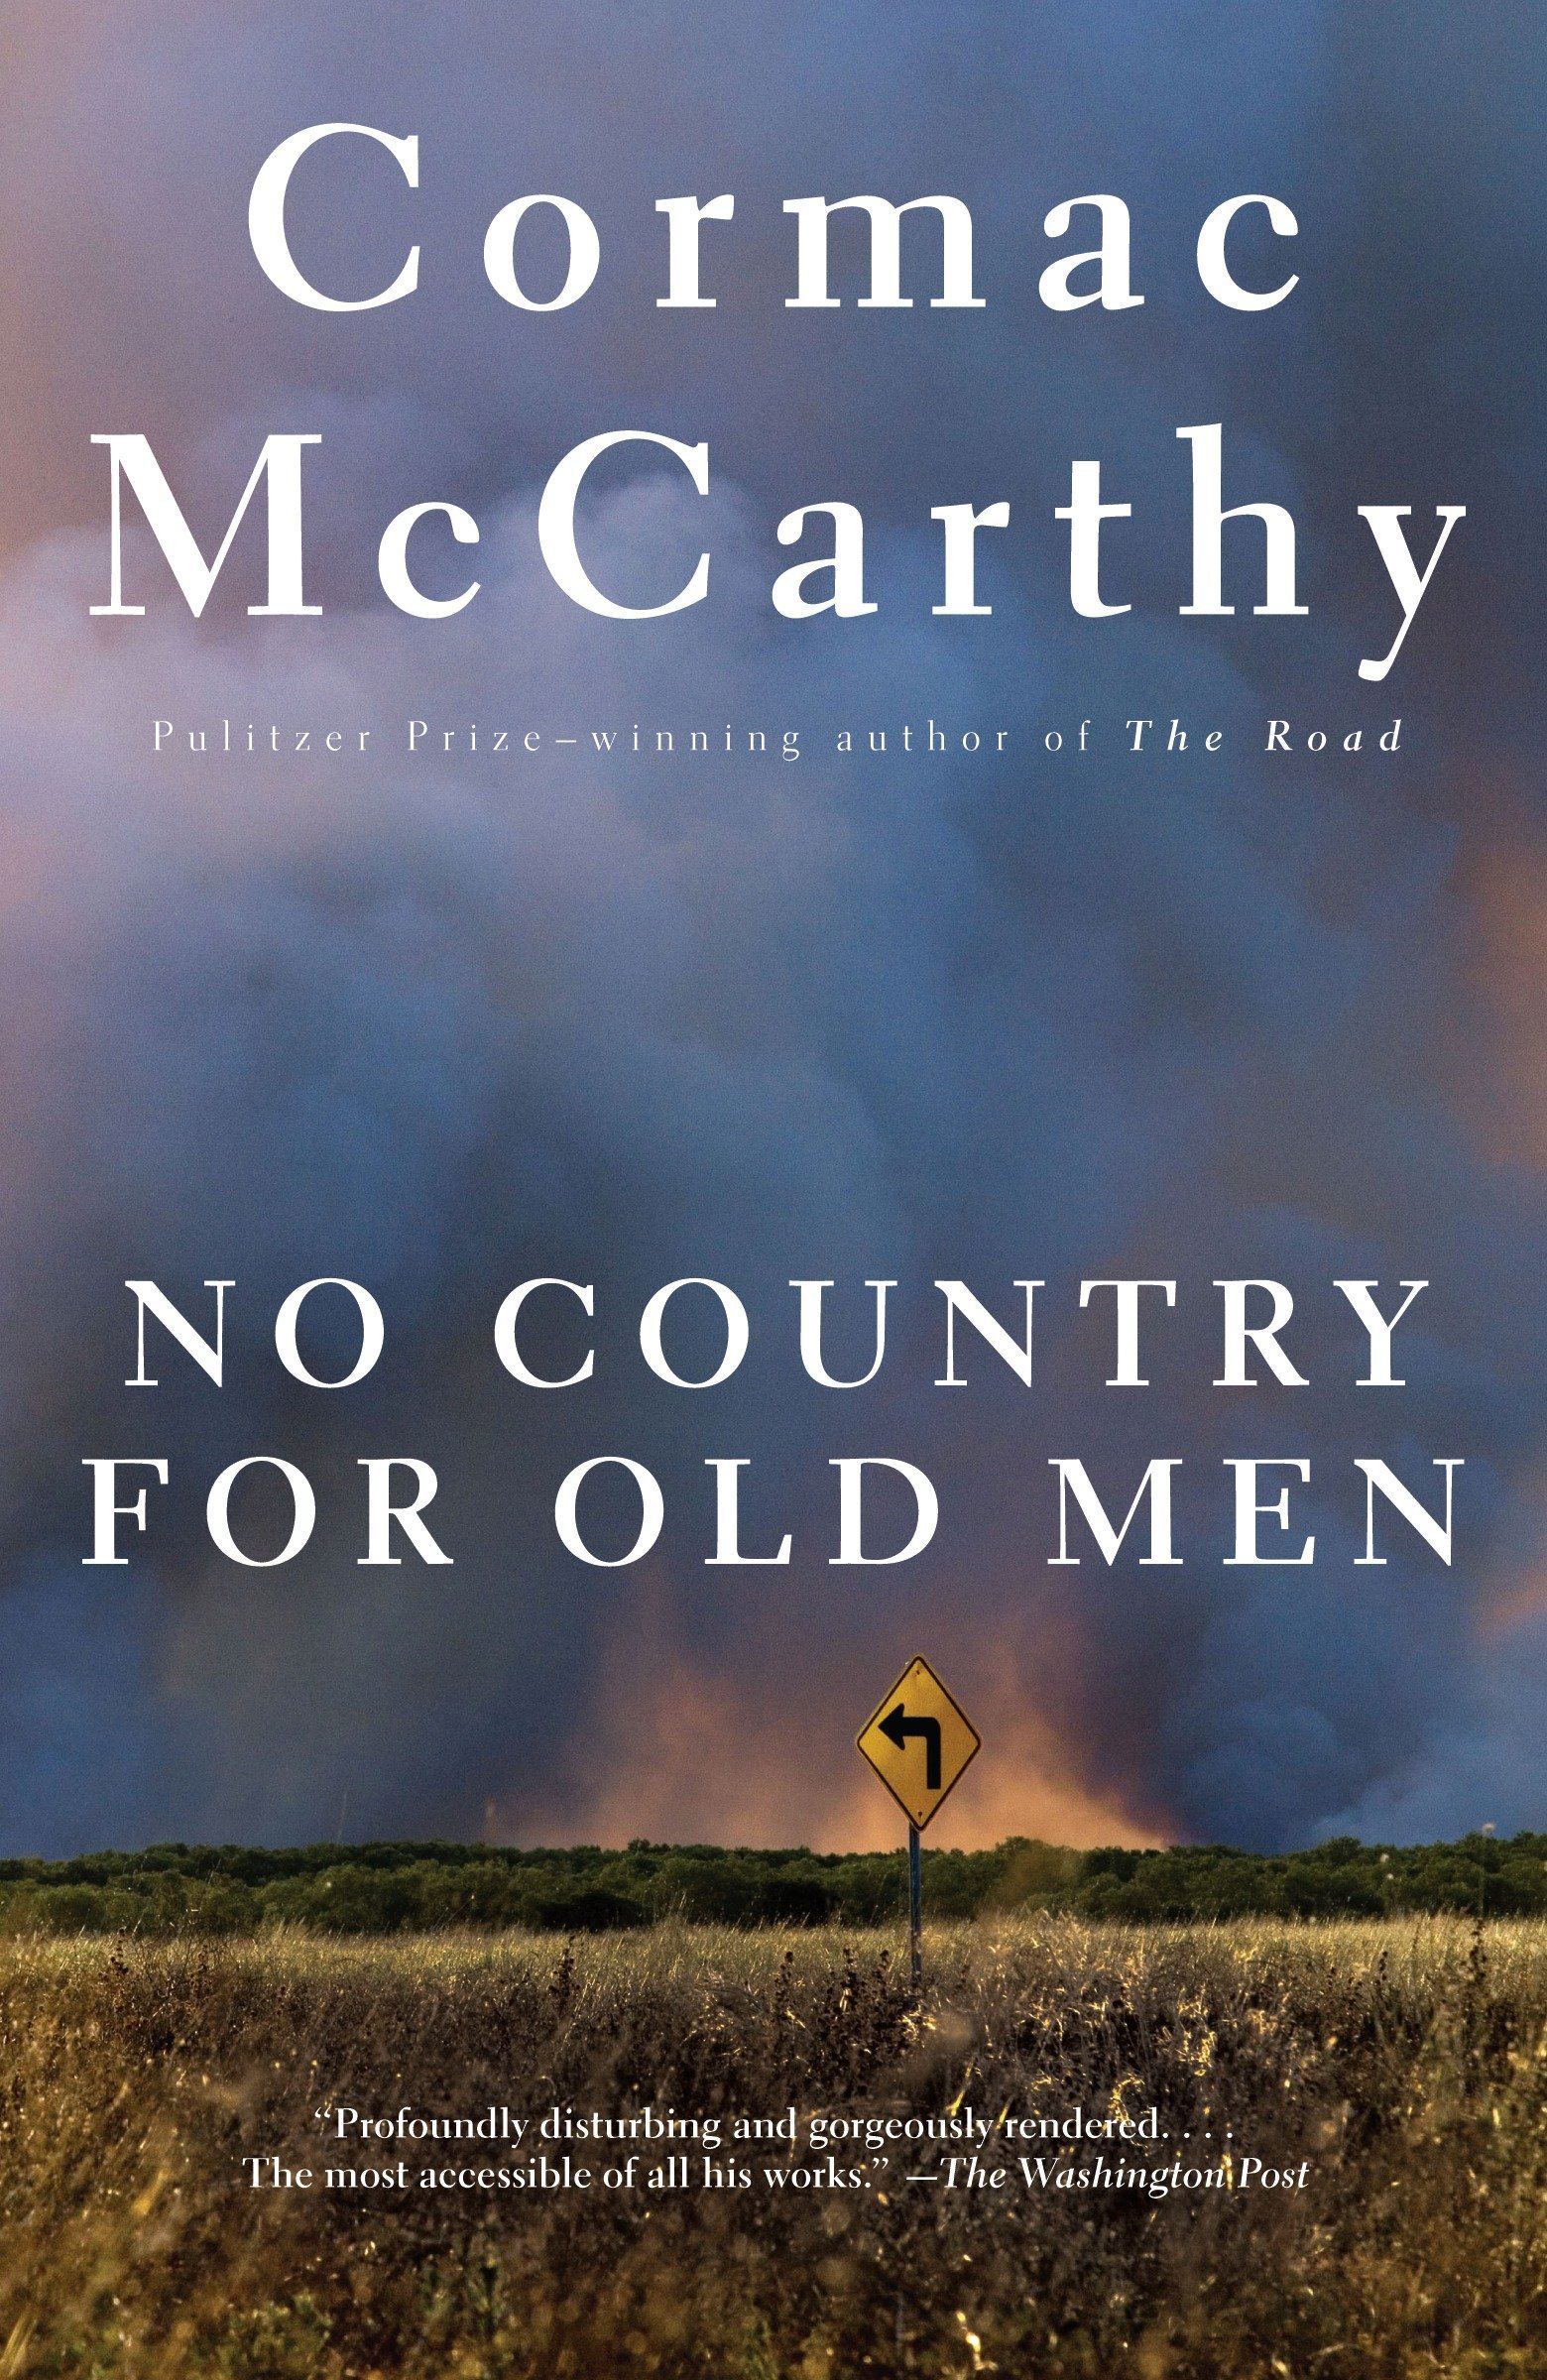 Amazon.com: No Country for Old Men (9780375706677): Cormac McCarthy: Books